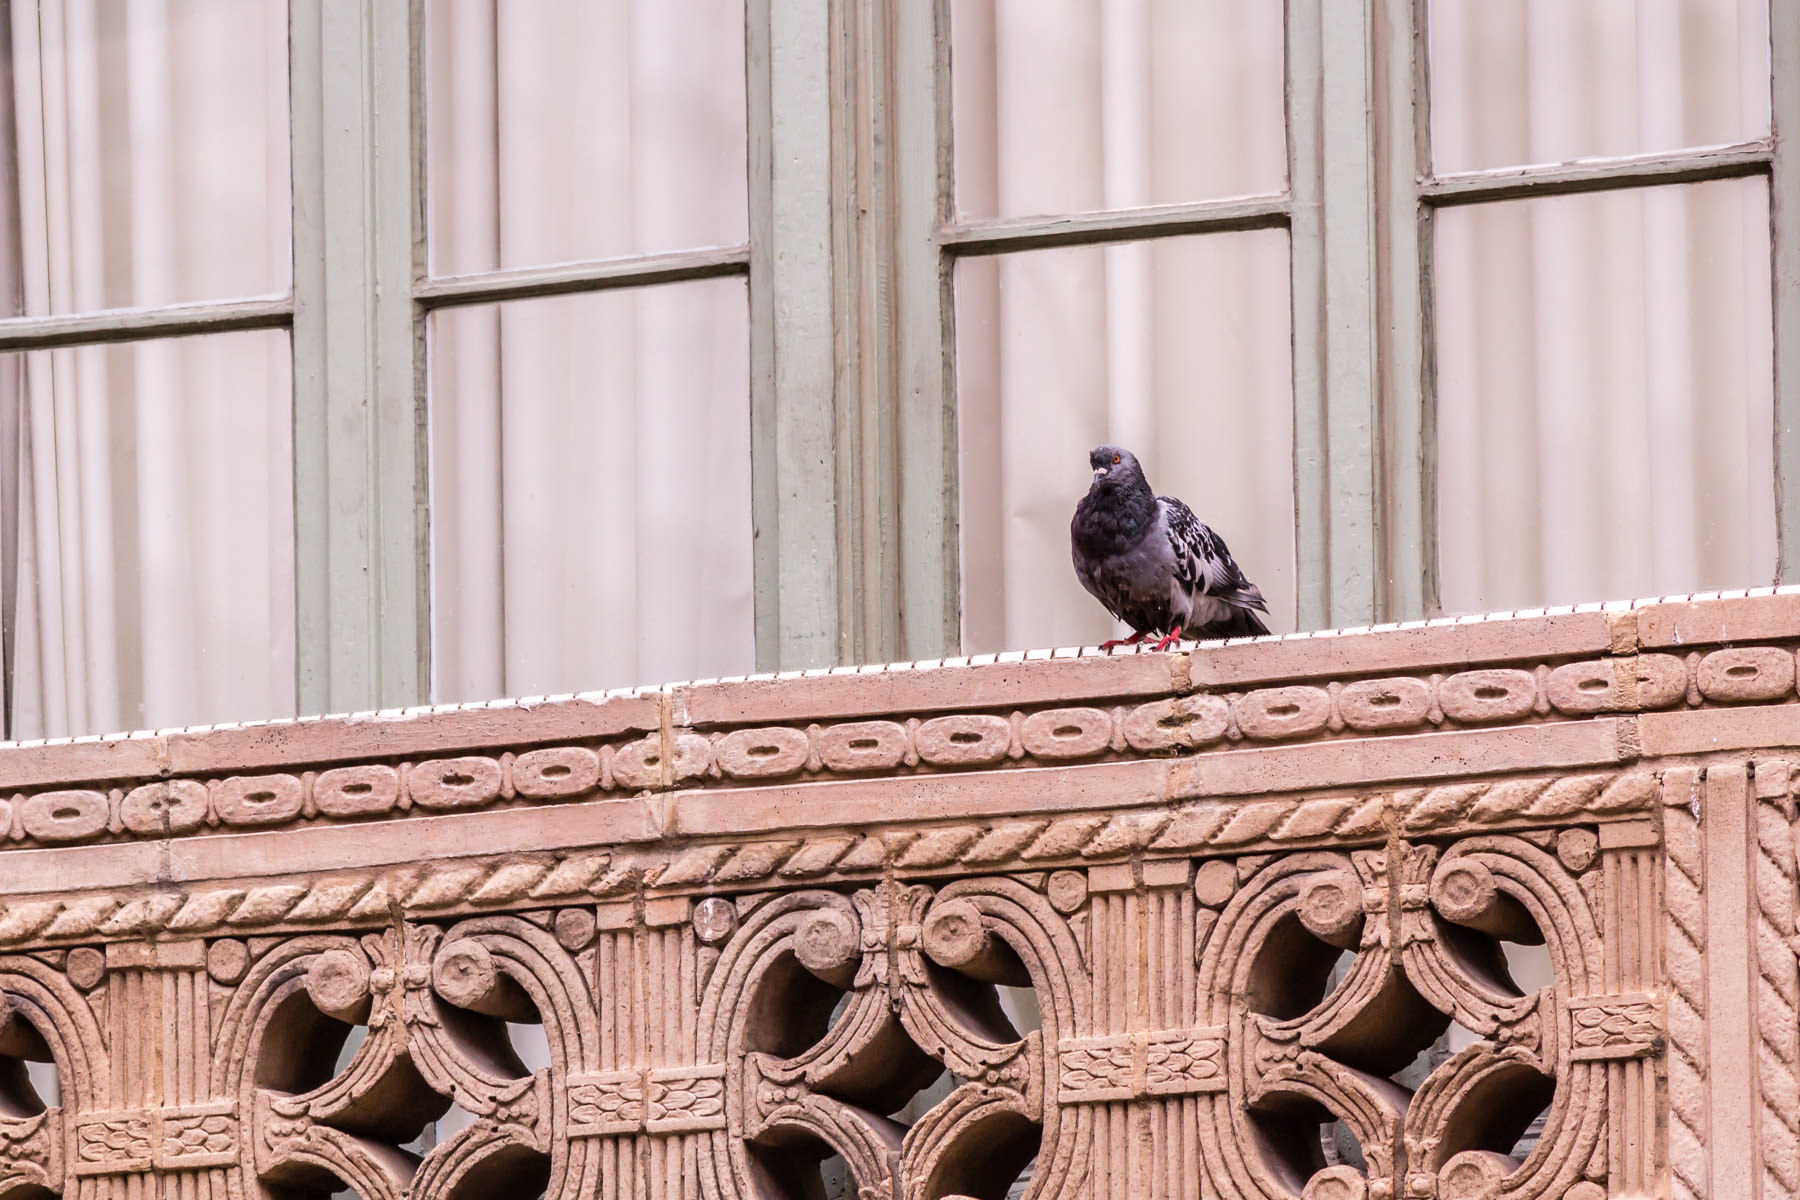 A pigeon surveys the goings-on below on the streets of Downtown Fort Worth, Texas.